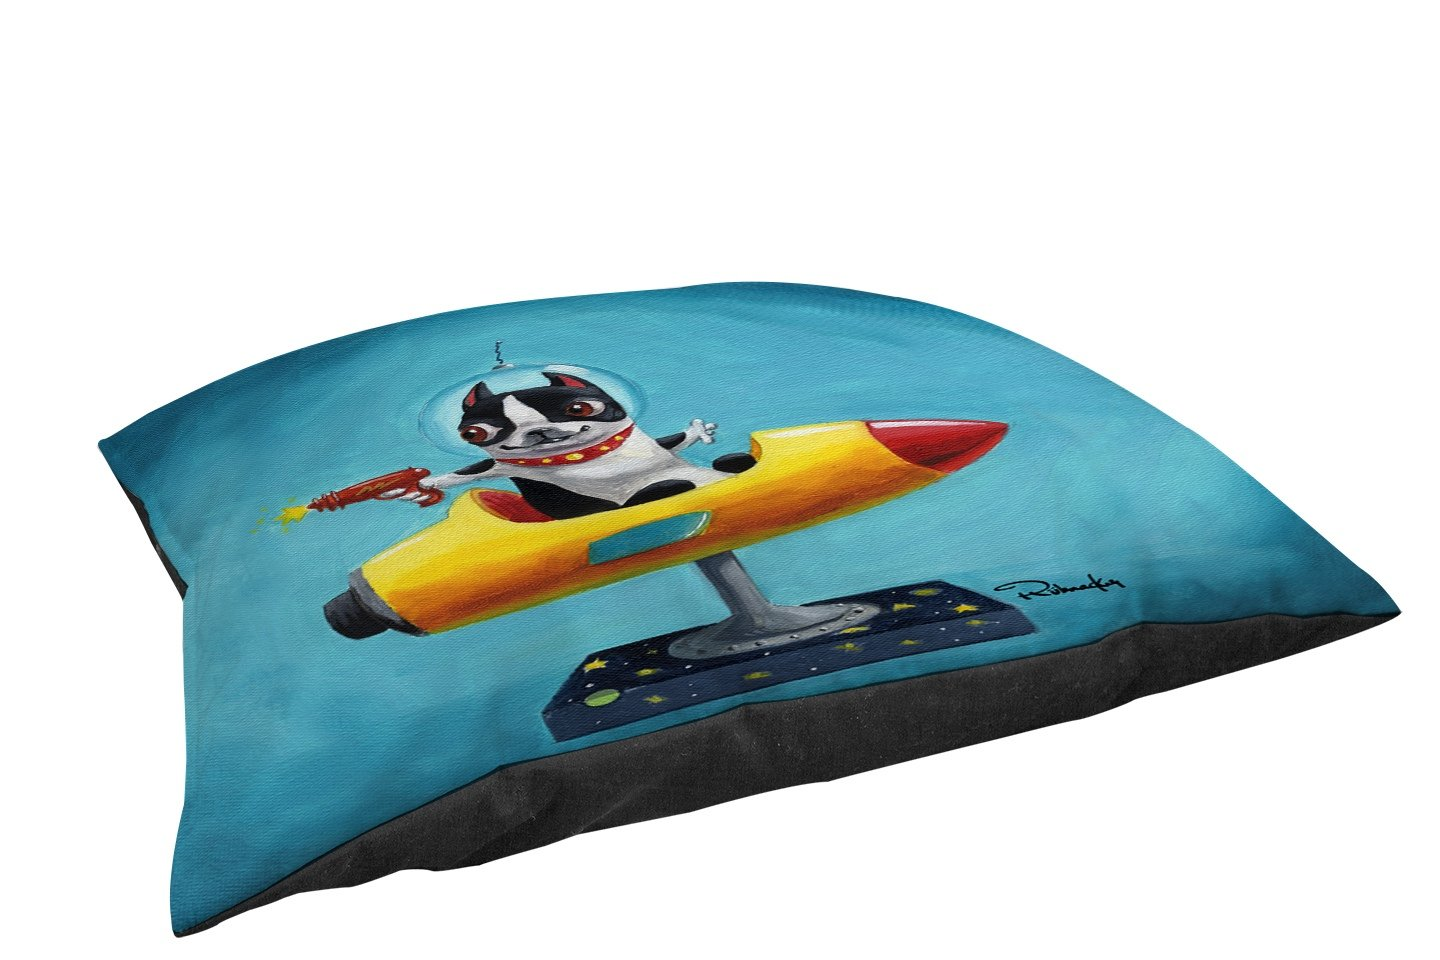 Manual Woodworkers & Weavers Fleece Top Toy or Small Breed Pet Bed, BT Rocket Blue, Multi Colored